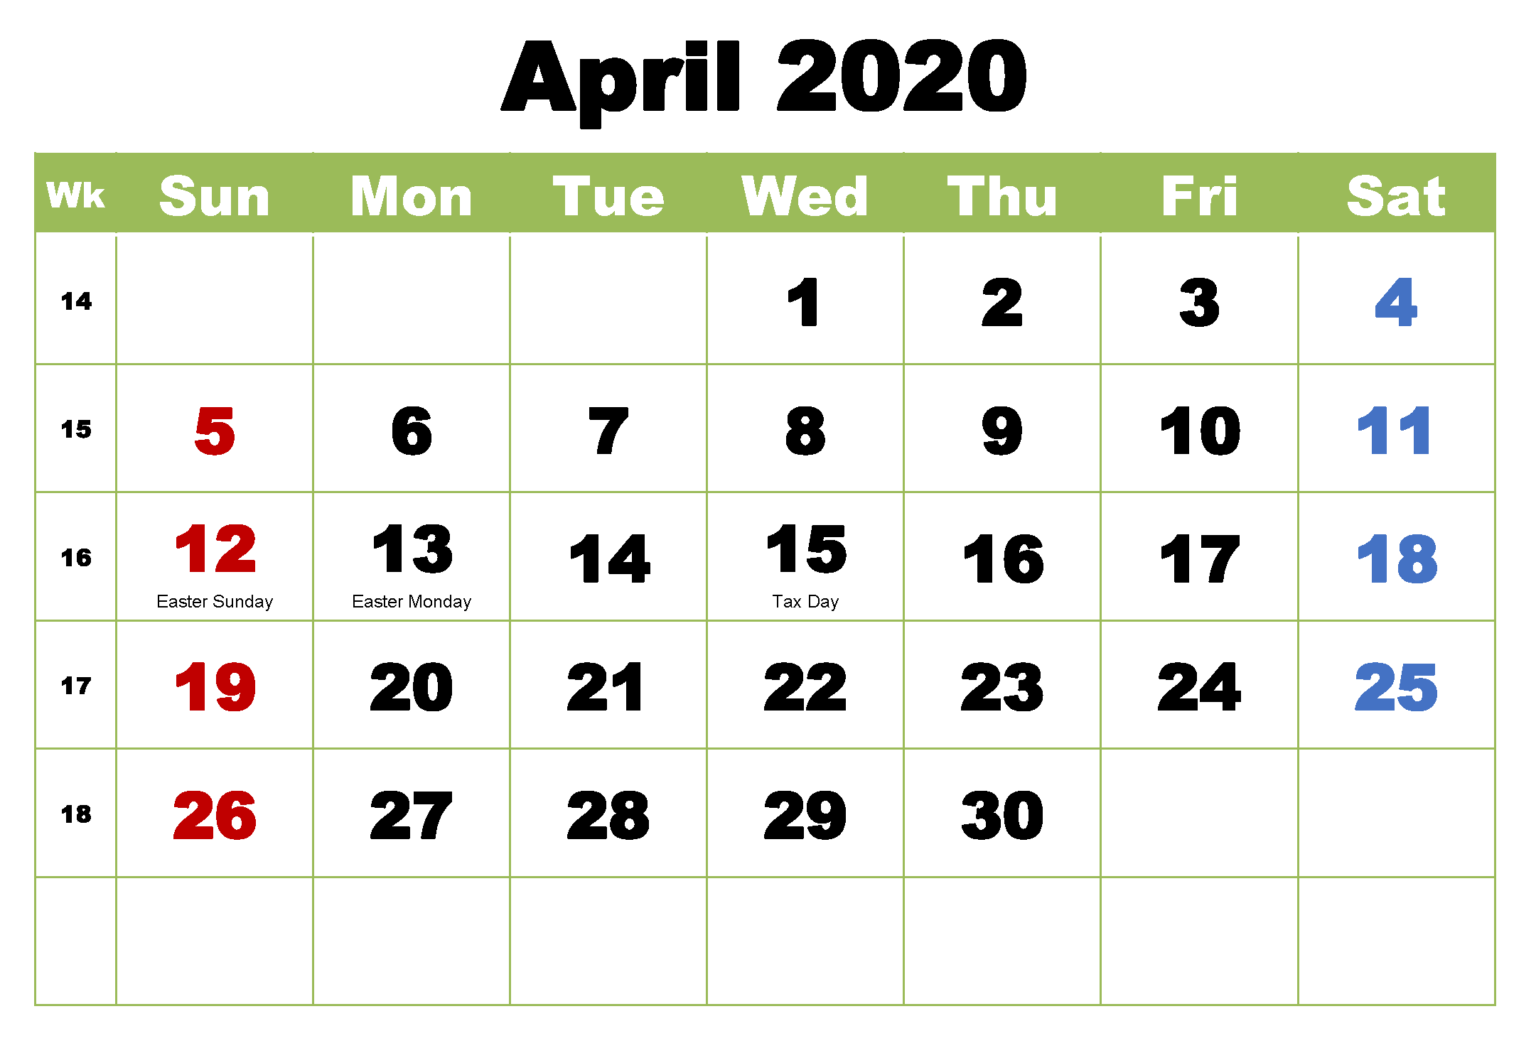 April 2020 Calendar With Holidays In 2020 With Images Holiday